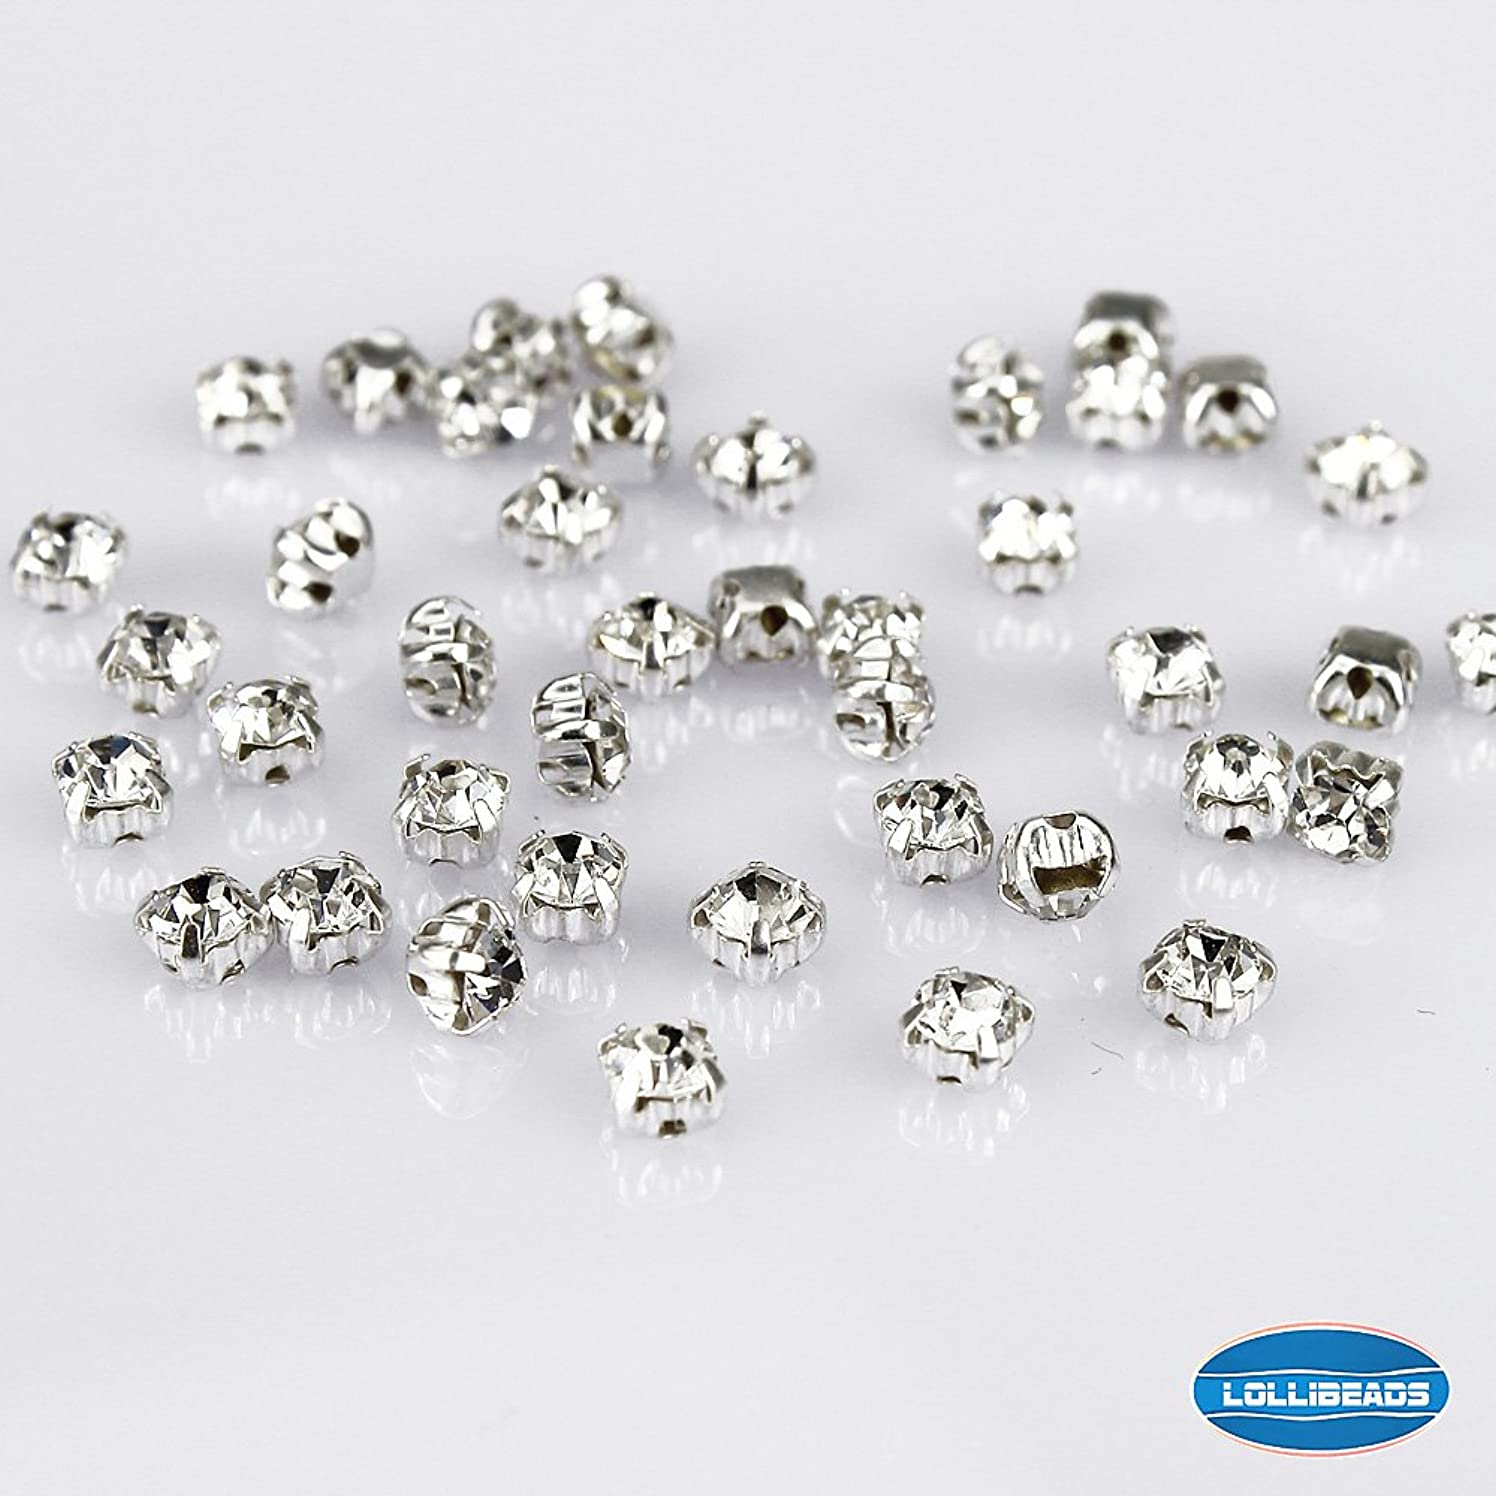 LolliBeads (TM) 100 Pcs Crystal Ringed Sew on Rhinestone Czech Glass with Silver Plated Brass Base Prongs Cup, White 5 mm